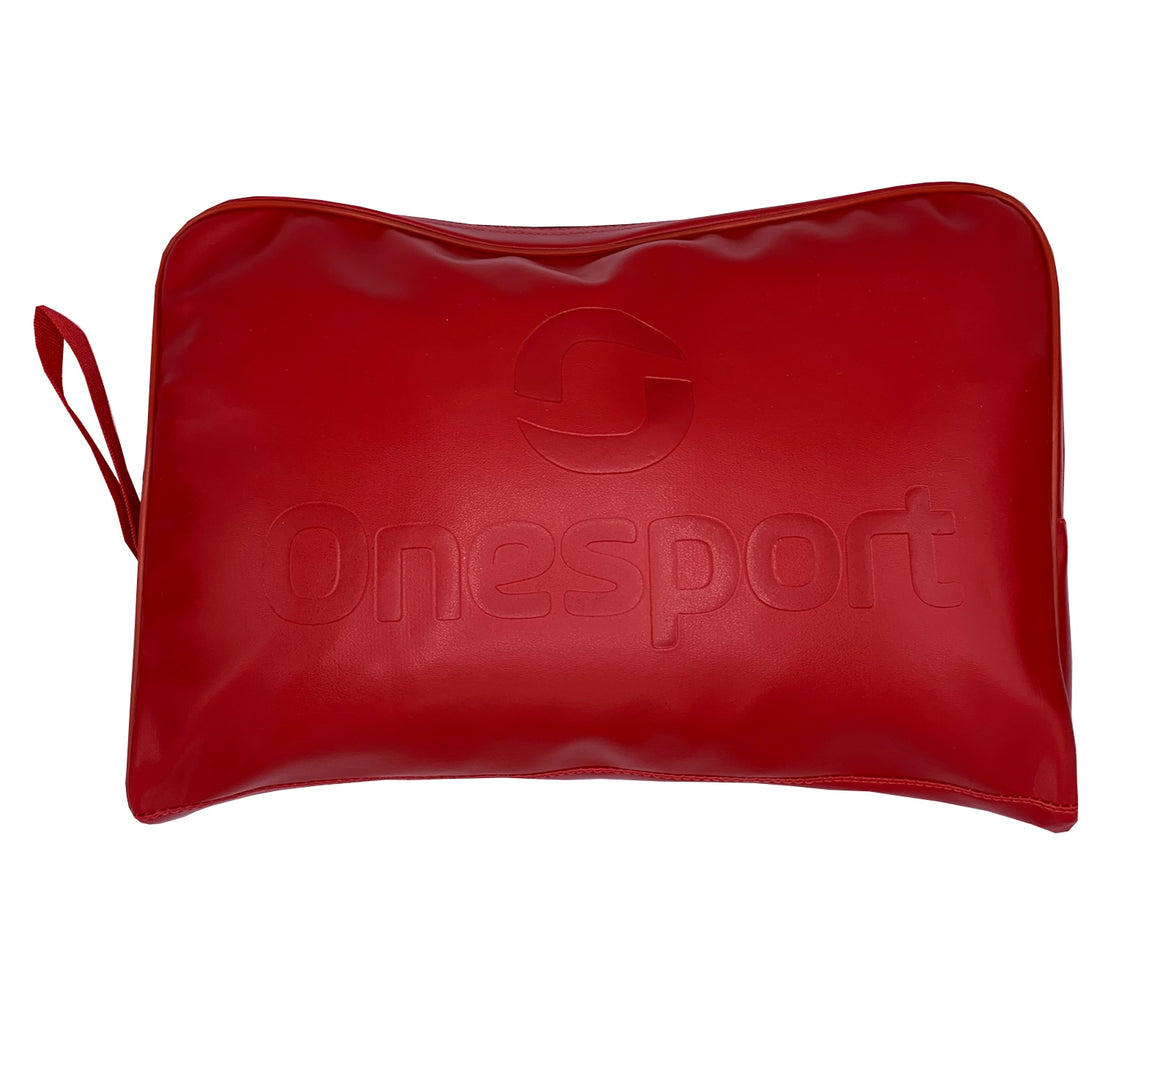 Onesport Glove Bag - Red